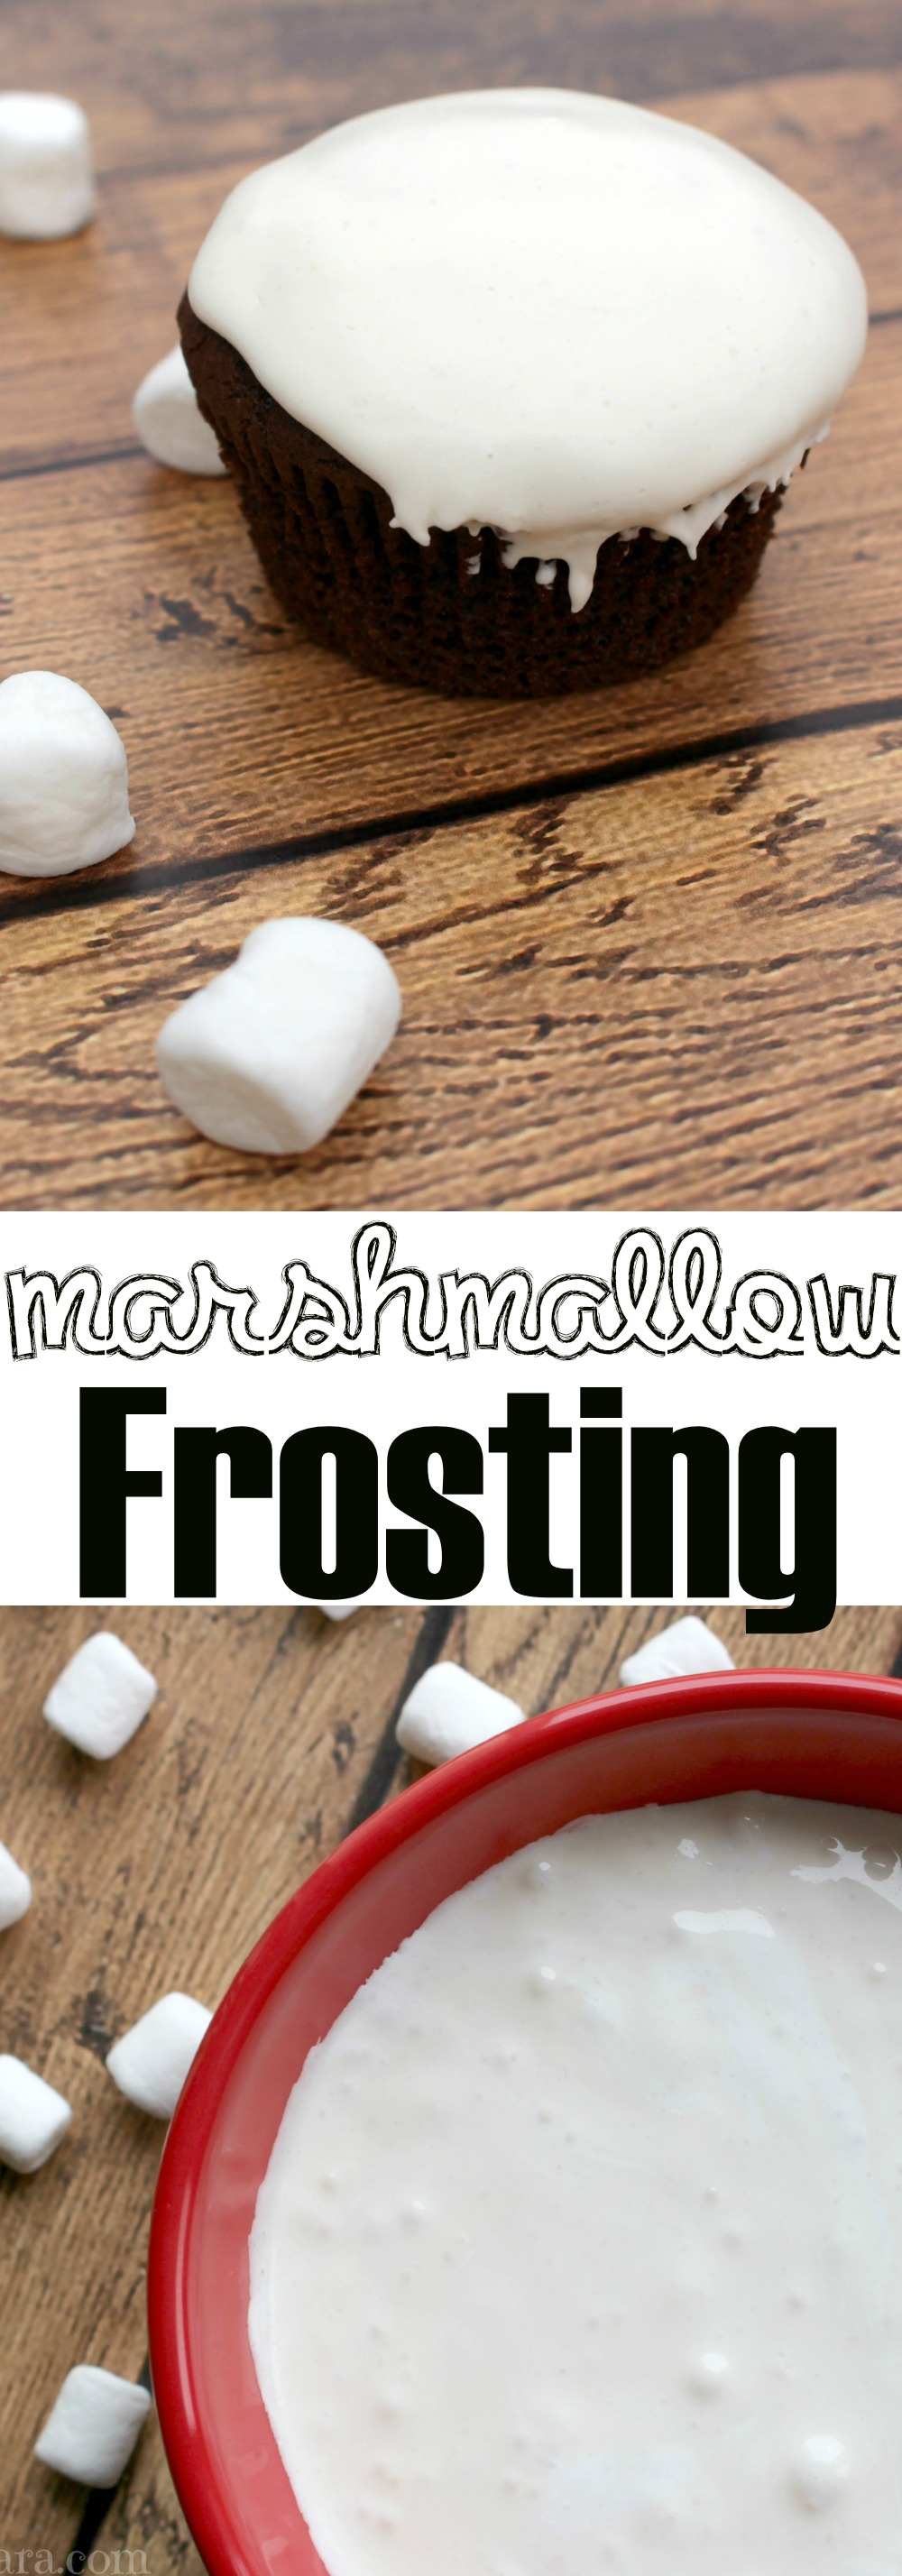 how to make marshmallow fluff icing